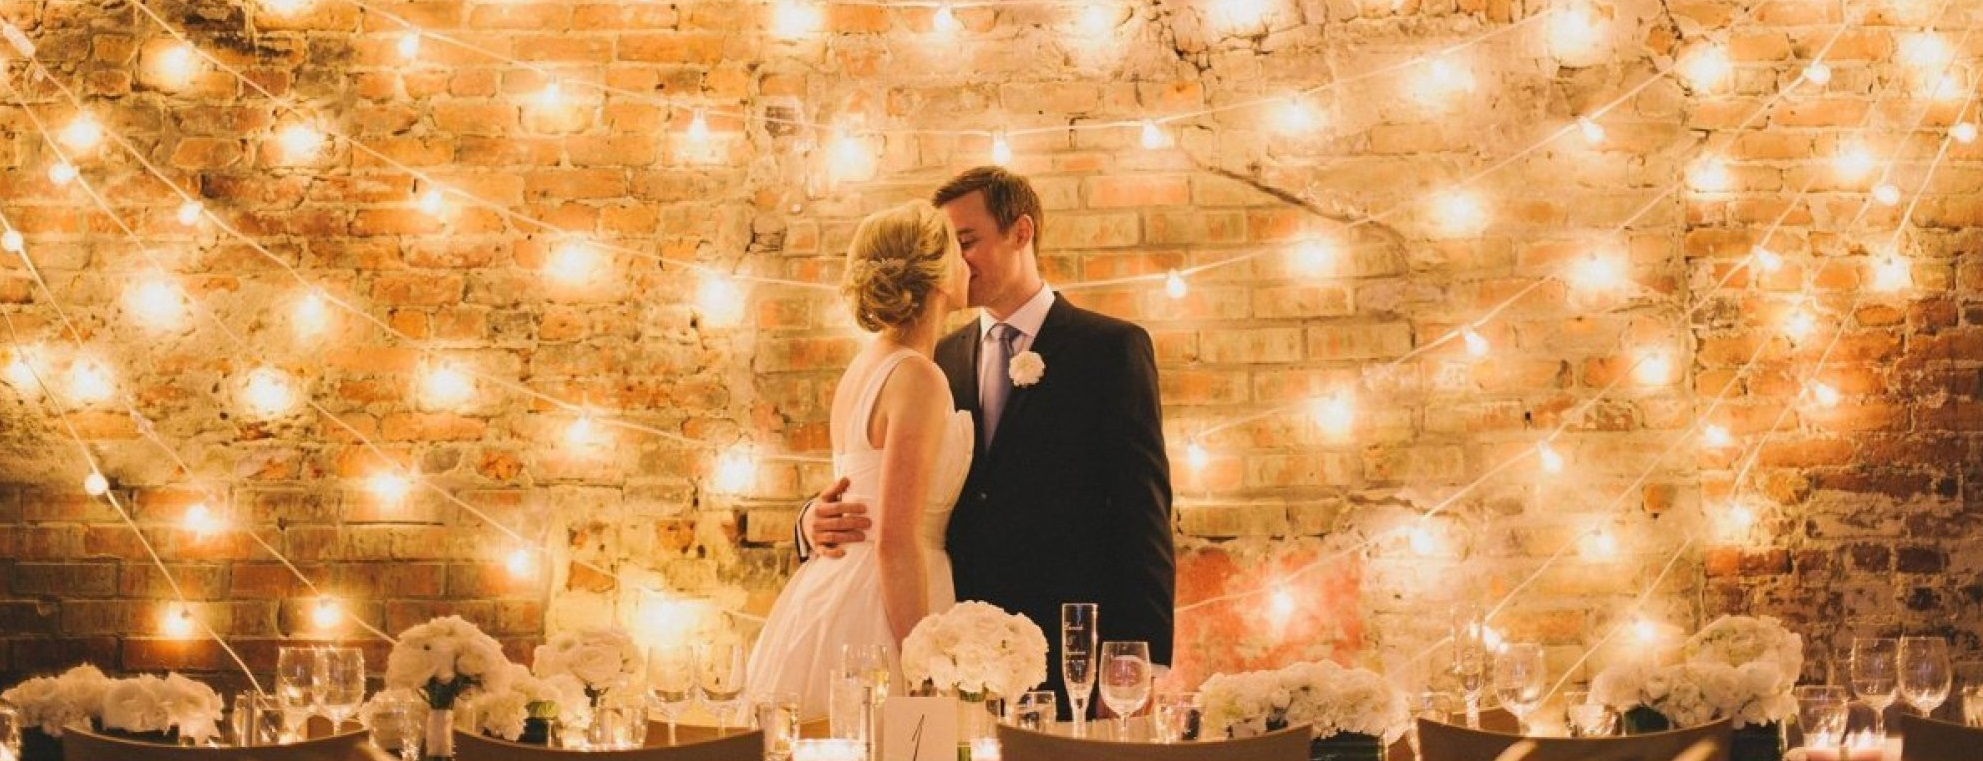 perfect wedding lights for photos